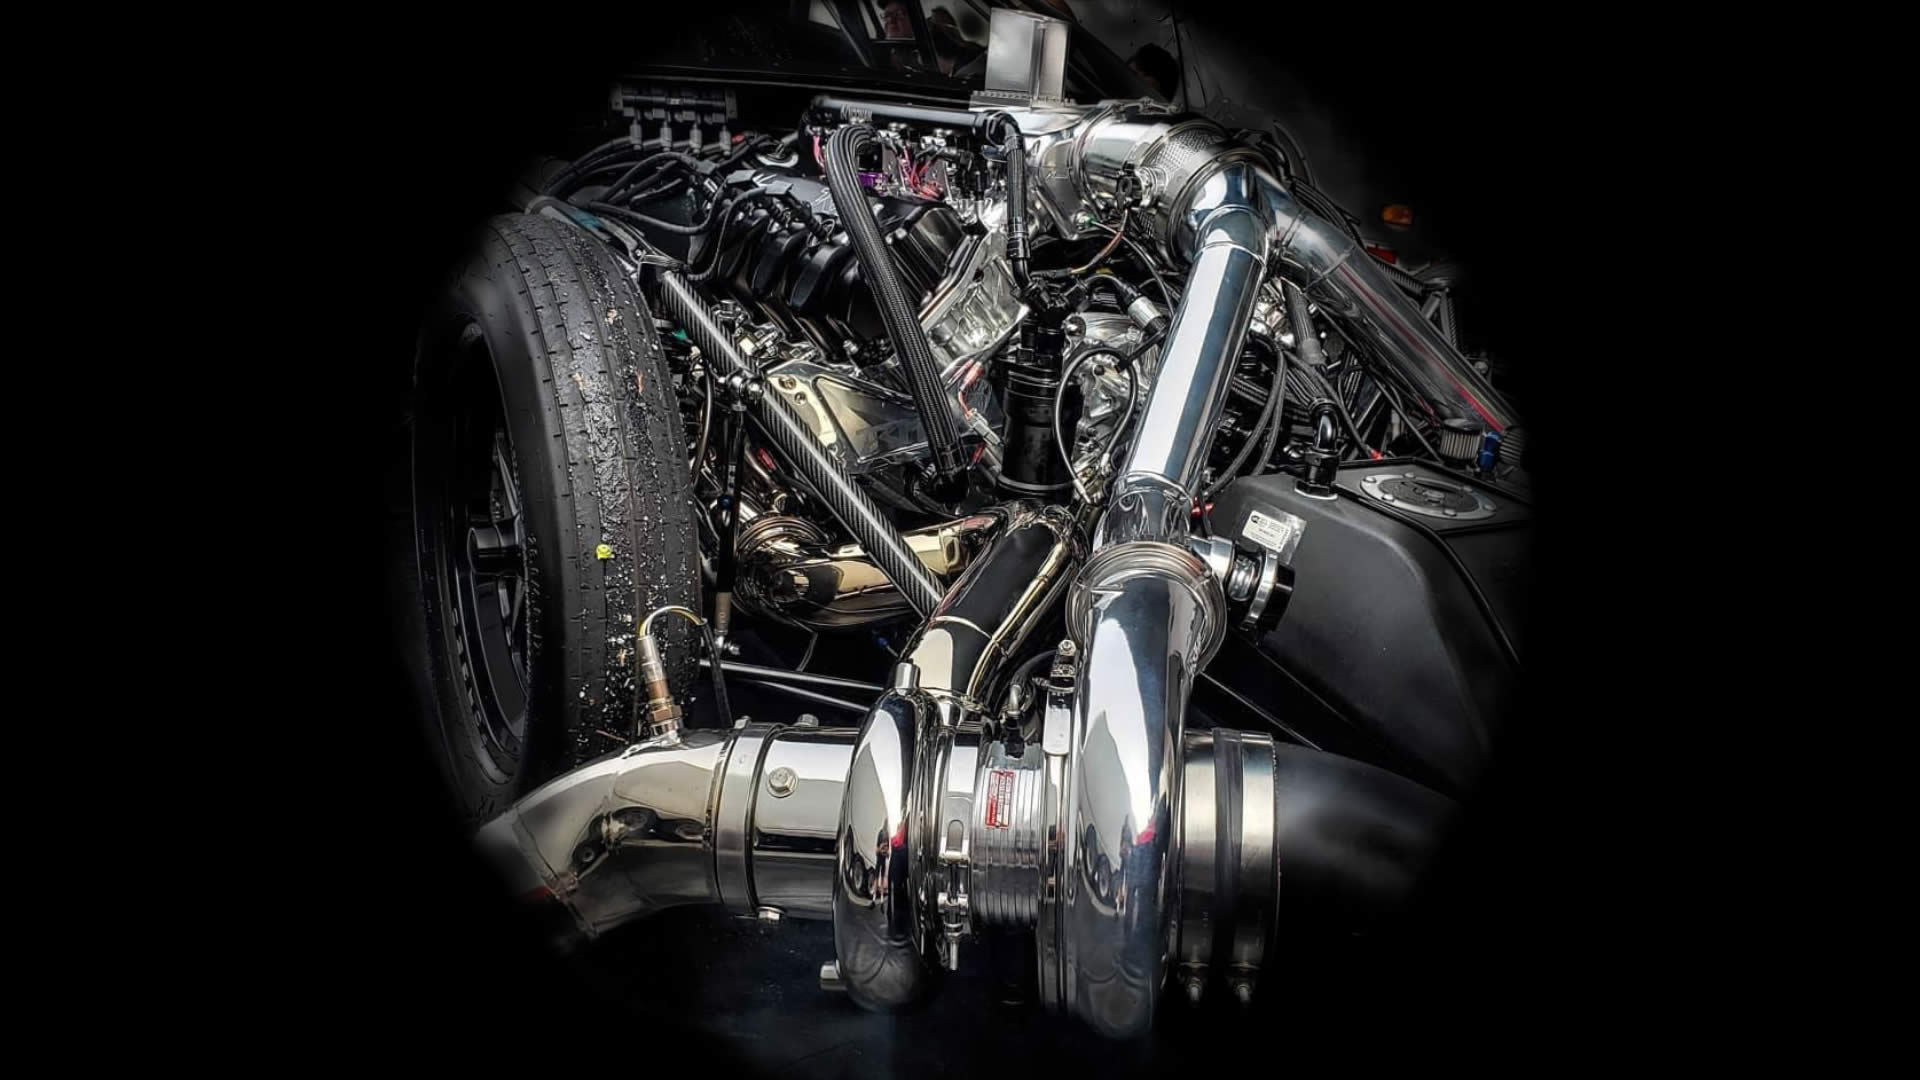 TKM Performance Turbo Drag Racing Engine